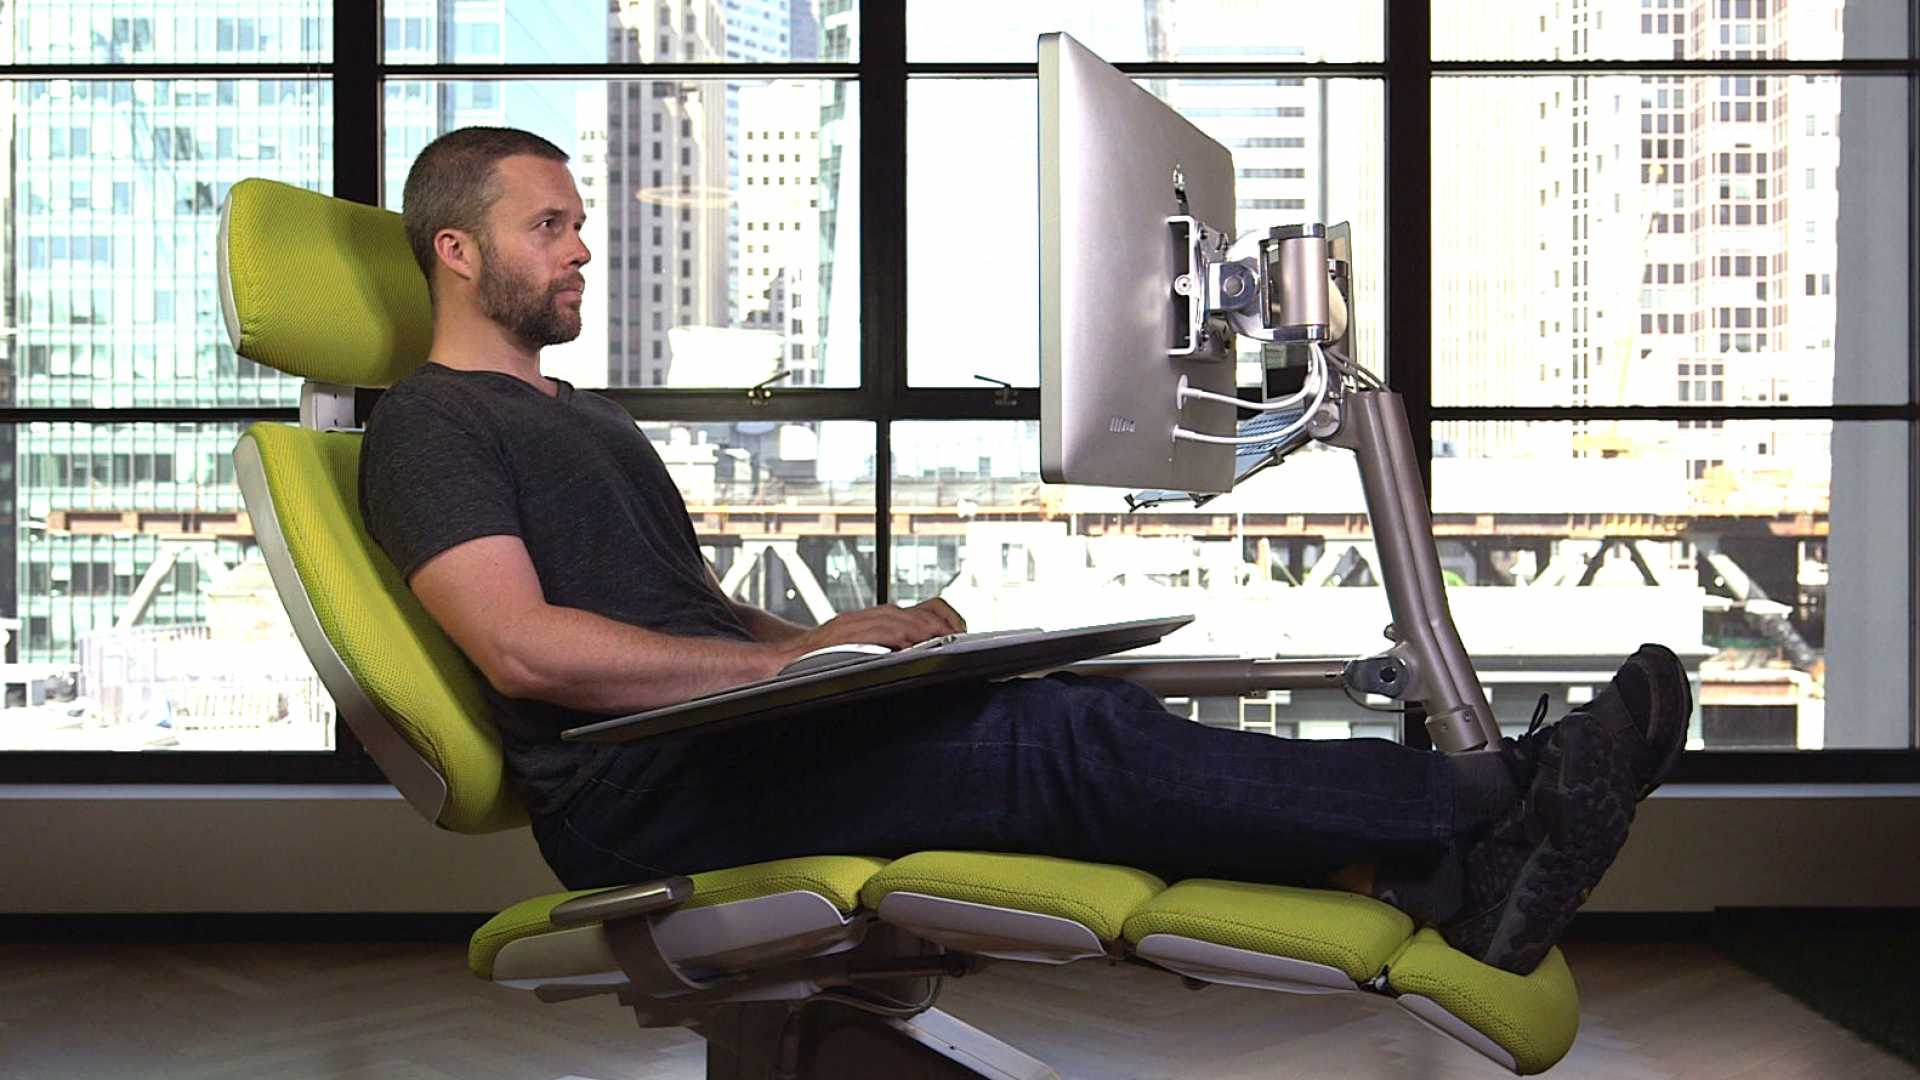 Reclining to work boosts your work output more than you think.